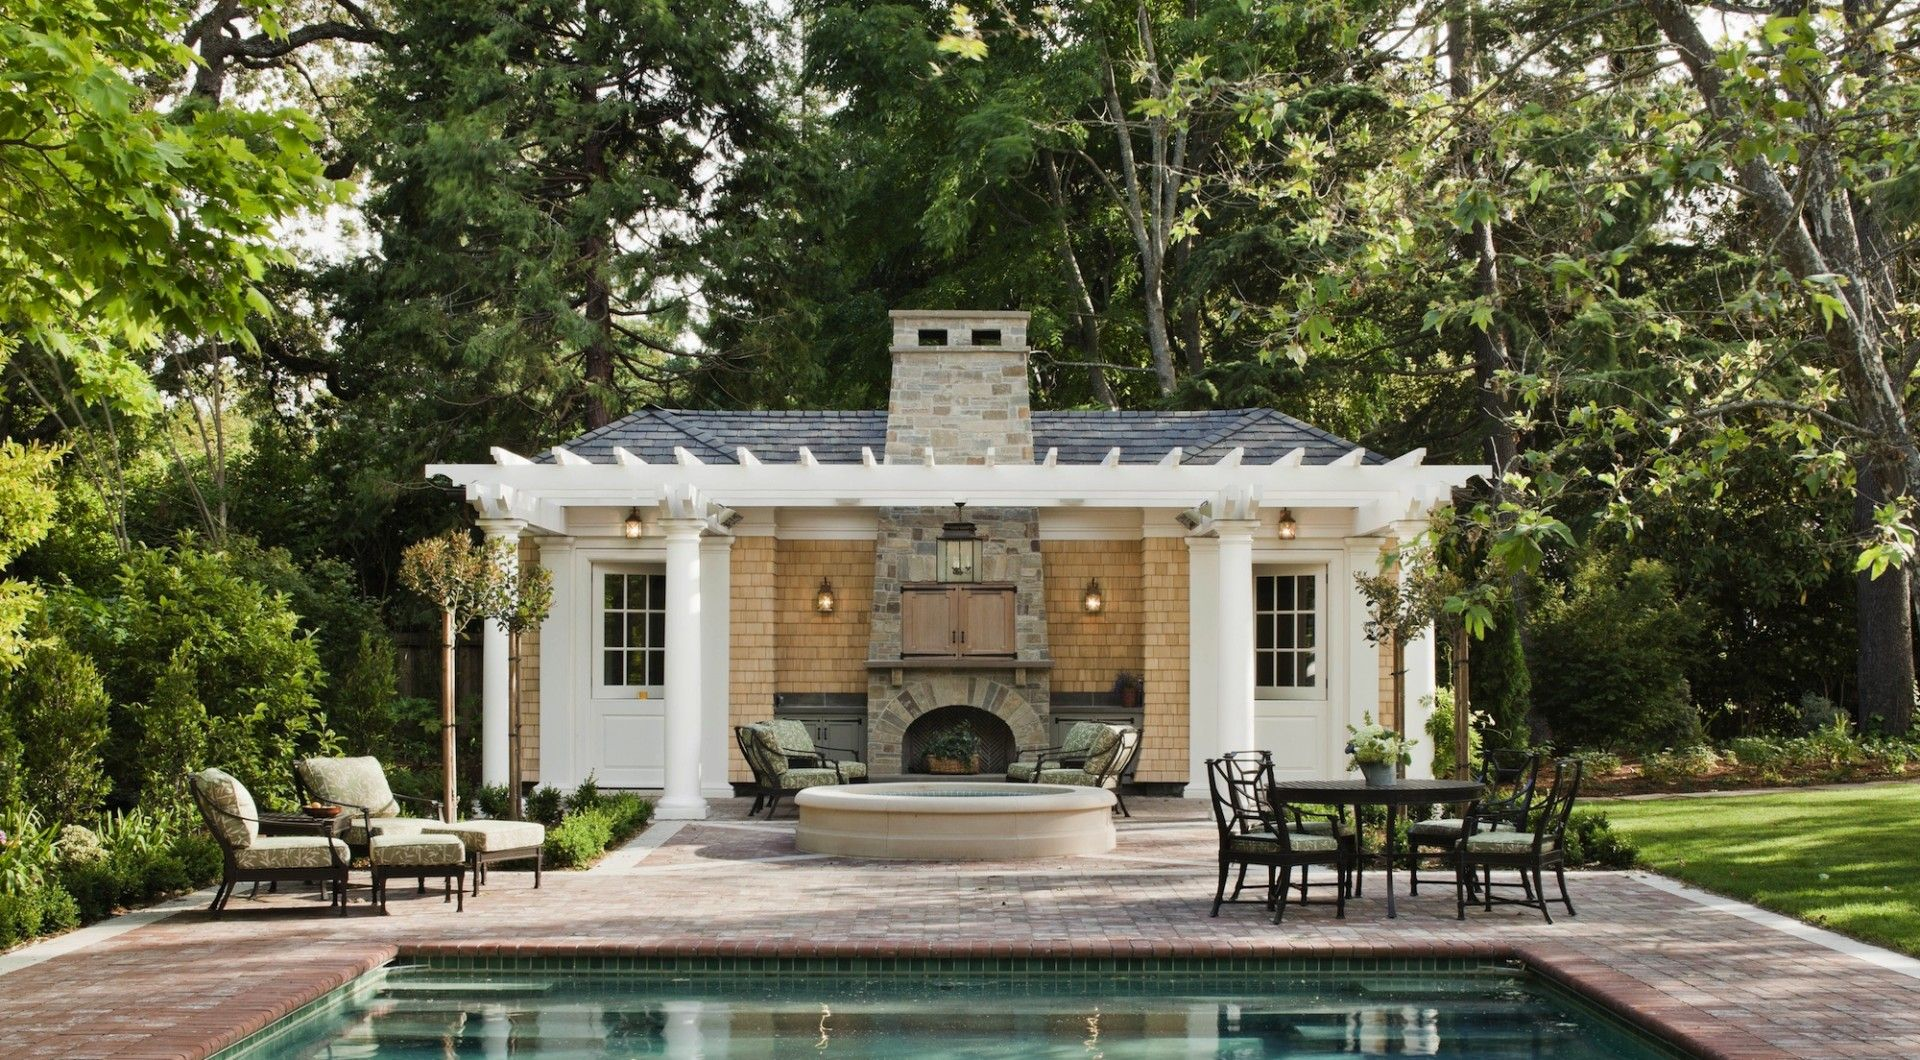 Pool House Design collect this idea outstanding swimming pool house design 7 Stunning Traditional Outdoor Fireplace Pool House Designs Ideas